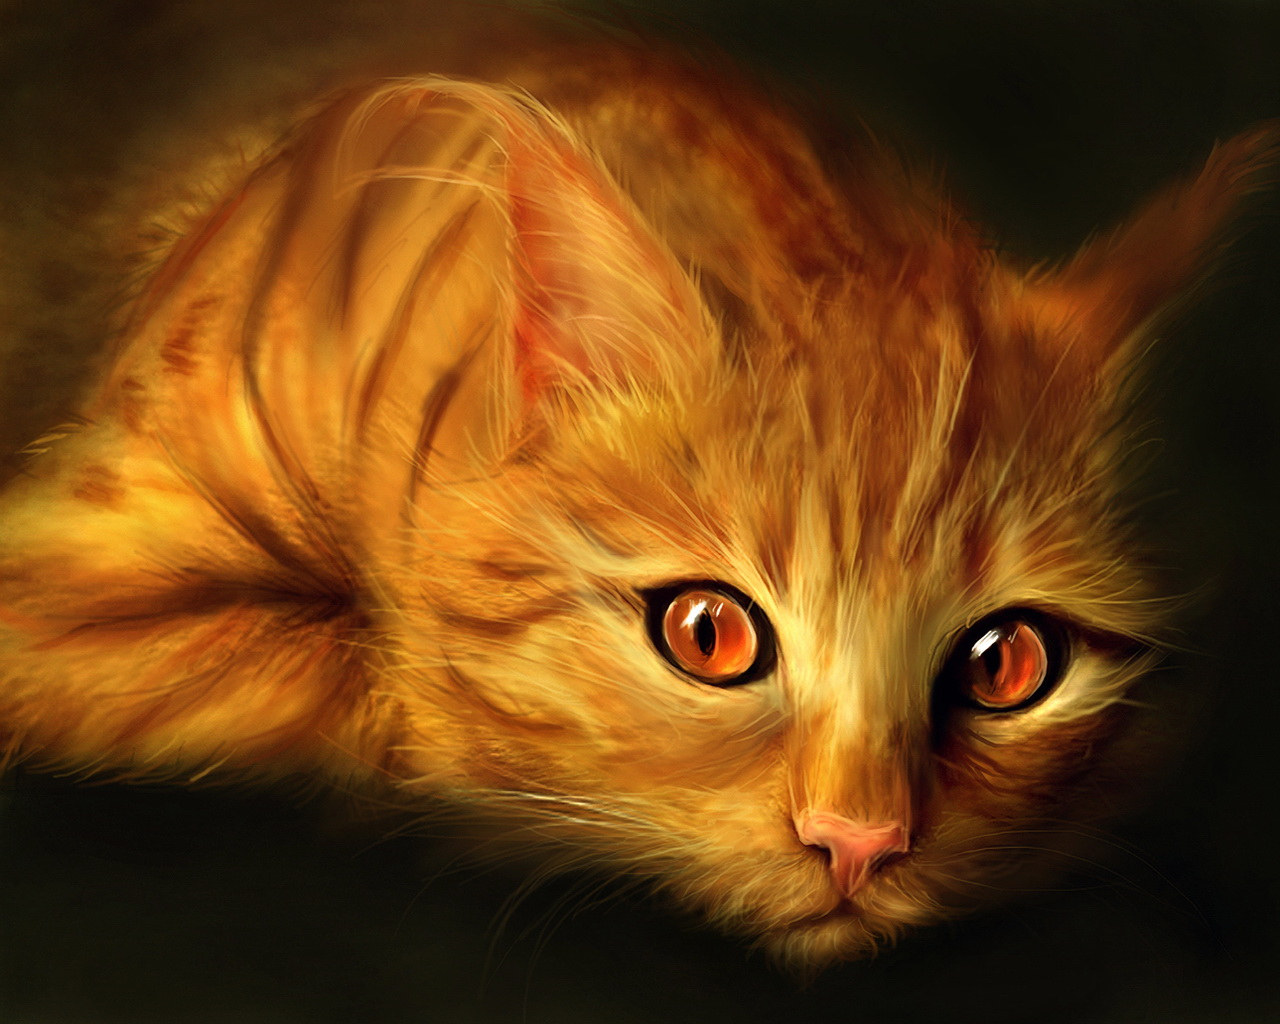 http://1.bp.blogspot.com/_LIXkB8goeEQ/TUcUDwW4YeI/AAAAAAAAAAk/4vNu5tx6UjQ/s1600/Drawn_wallpapers_Red_Cat_015011_.jpg